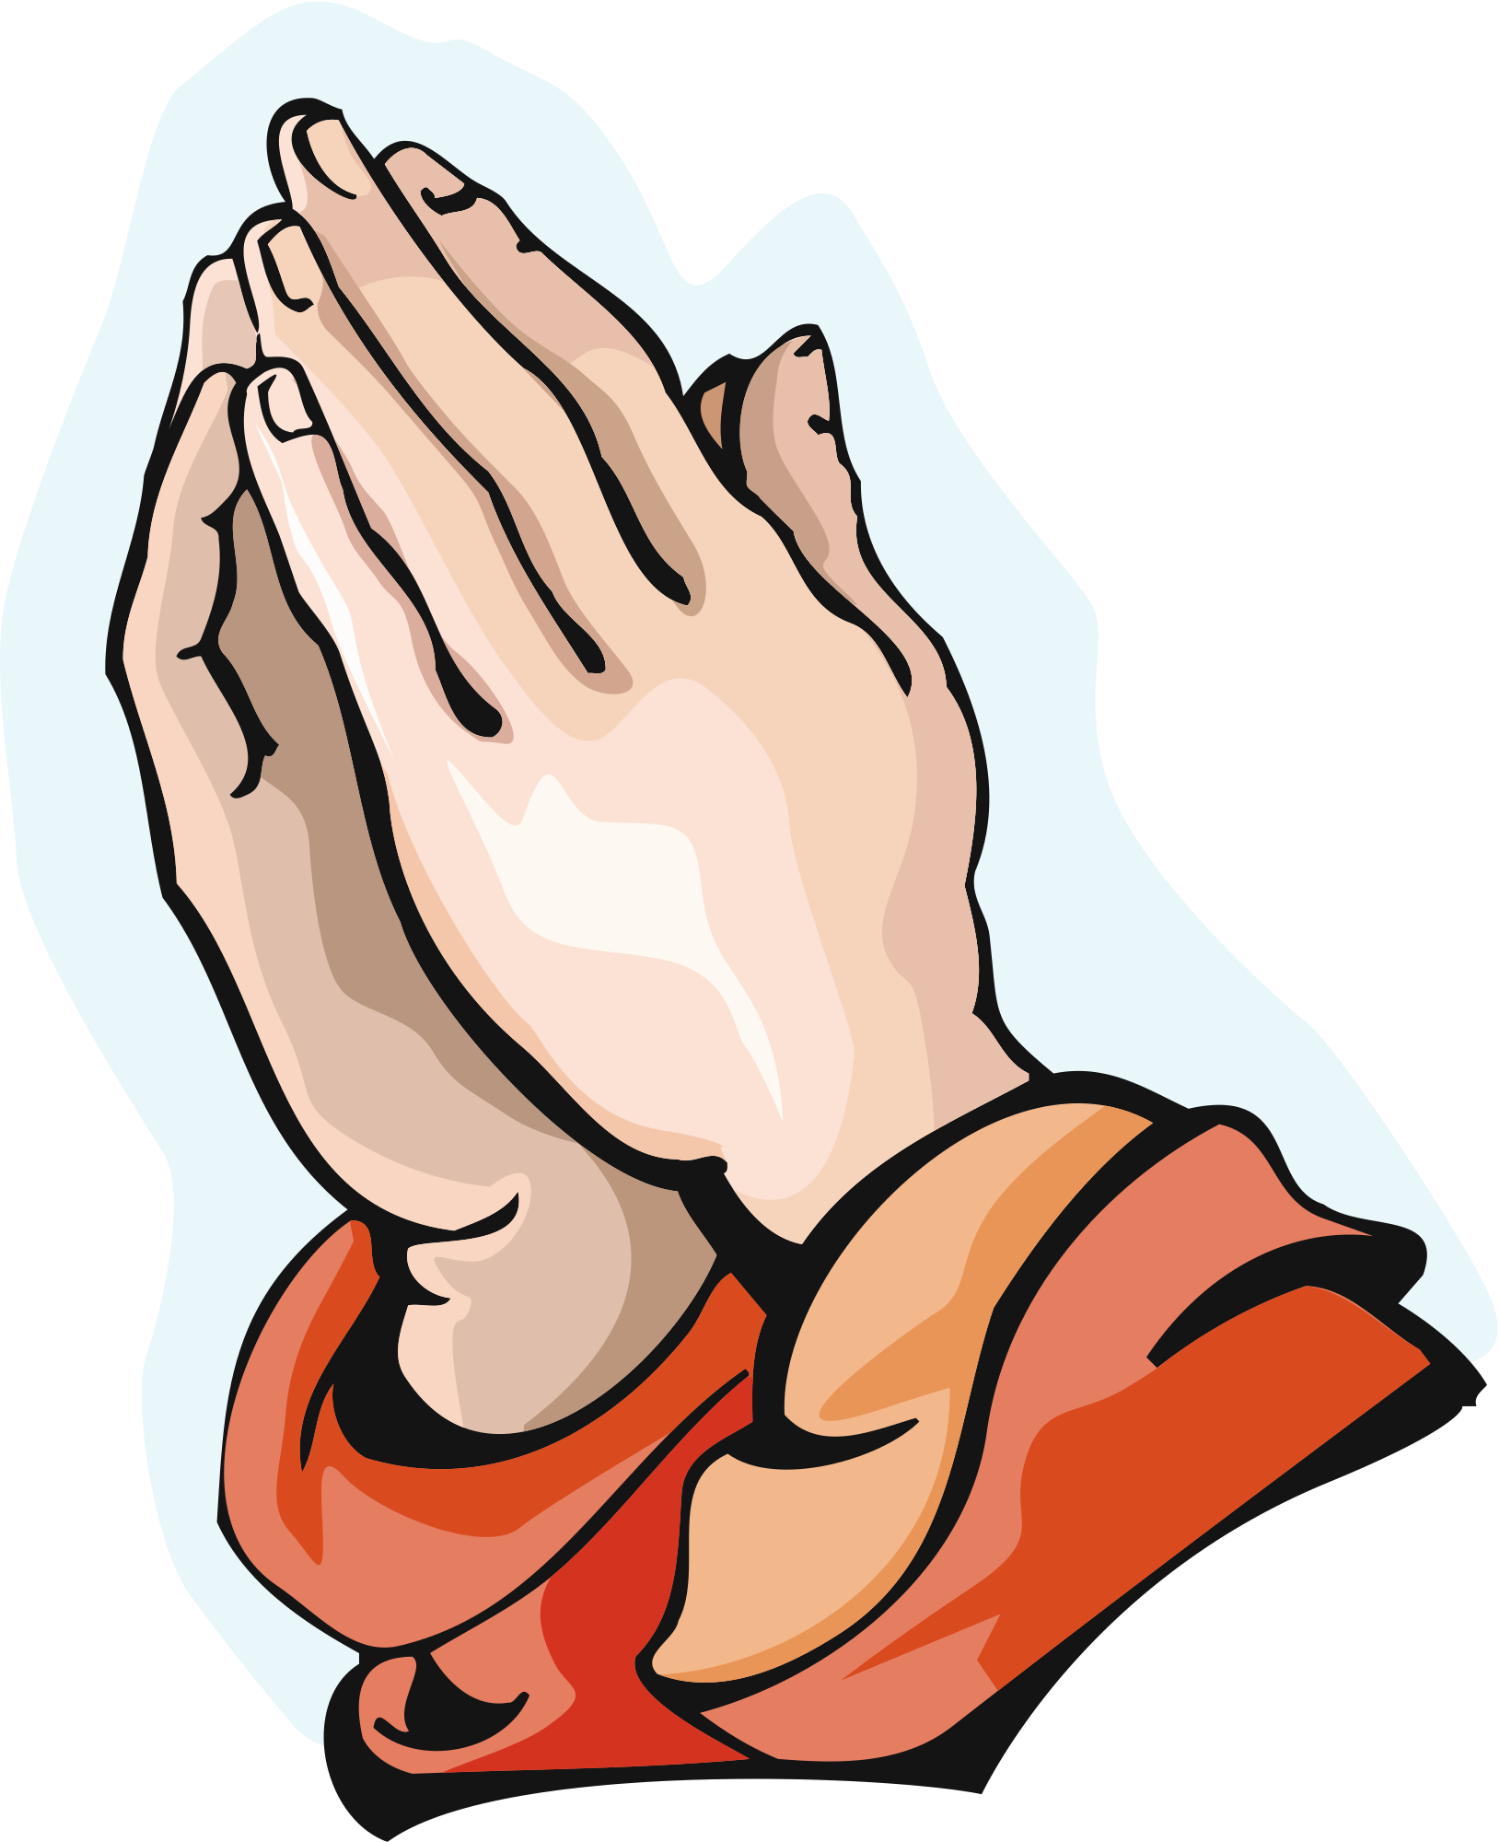 praying hands clipart cartoon prayer hands clipart lifestyle rh pinterest com clip art praying hands print for free clip art prayer hands